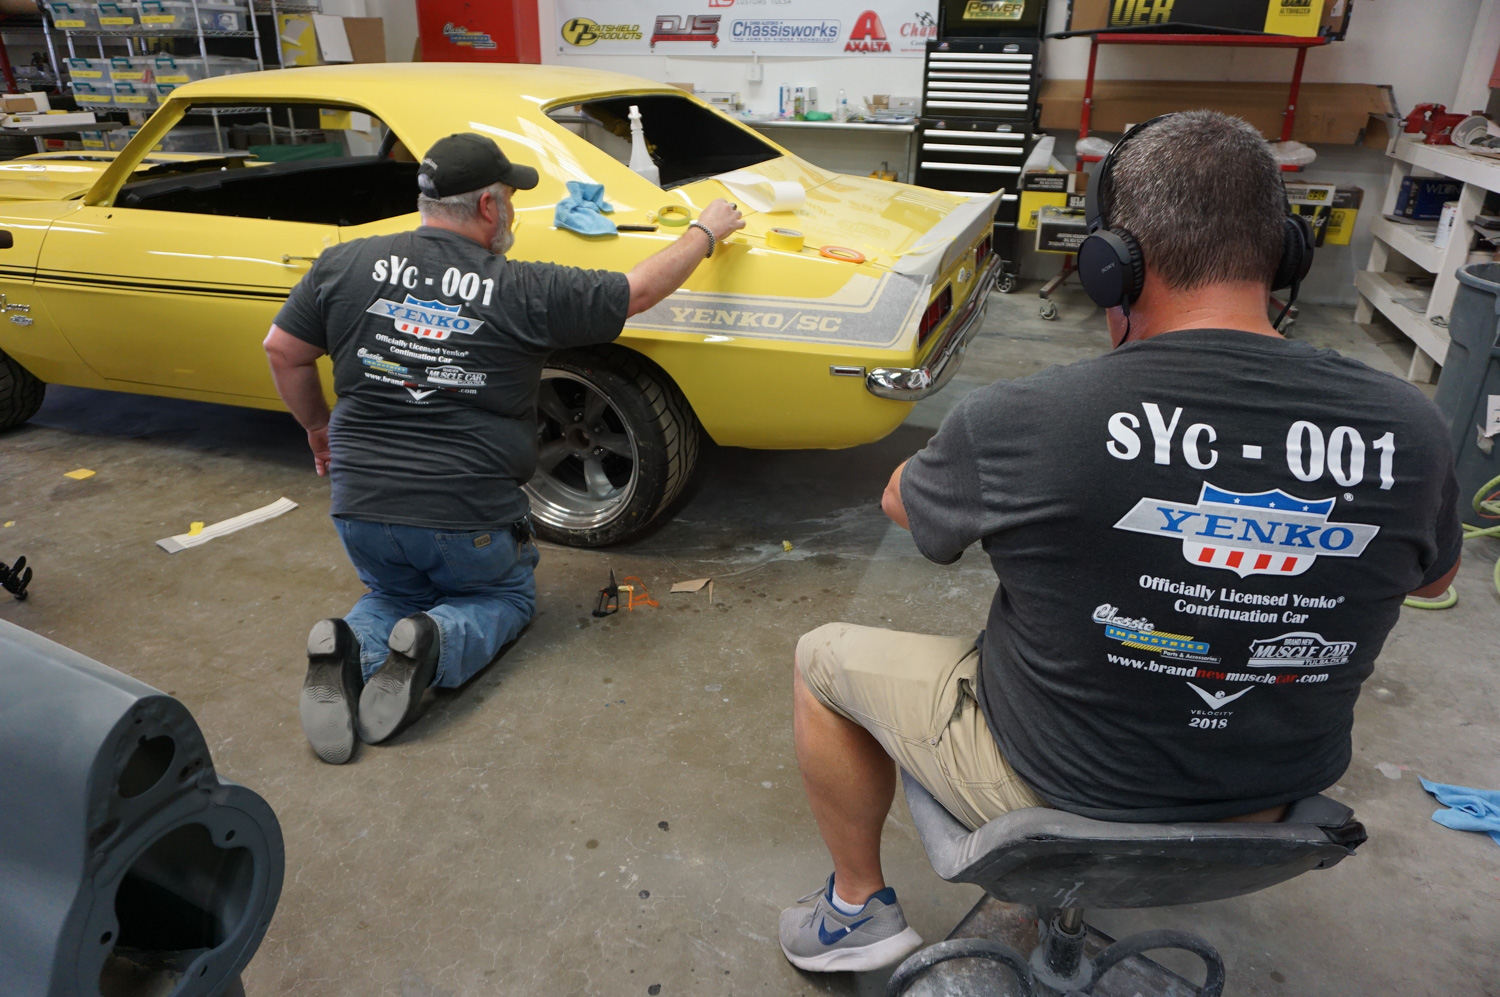 Applying the official Yenko stripes; the build was filmed for the Velocity Channel.